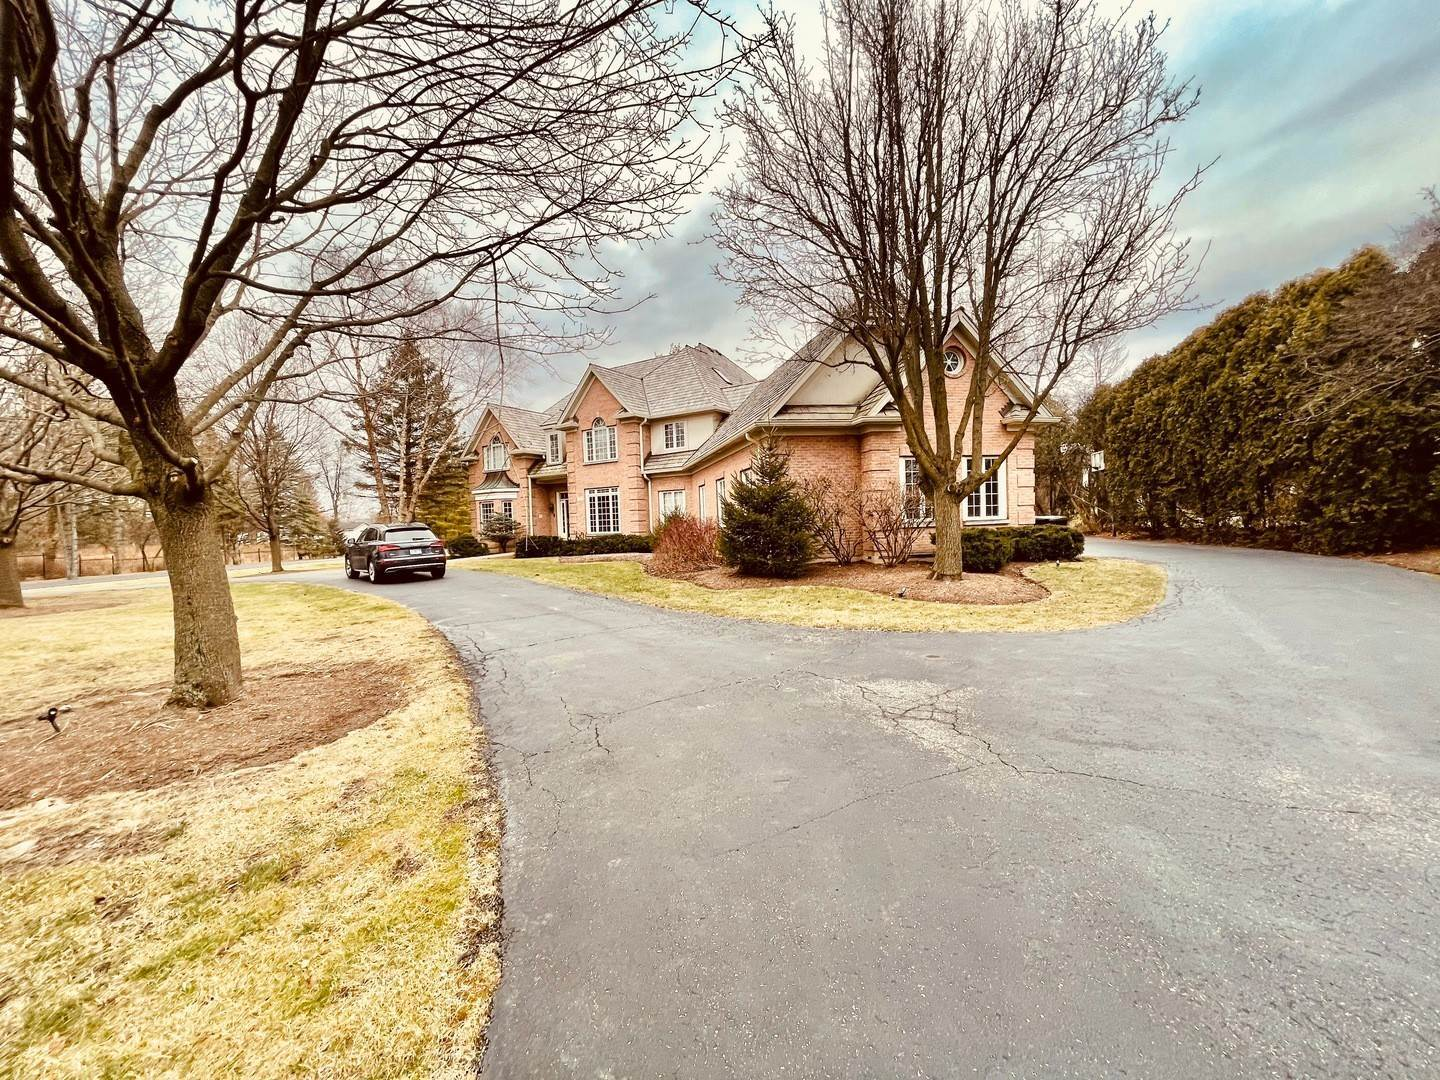 Property for Sale at 11 S Wynstone Drive Barrington, Illinois 60010 United States